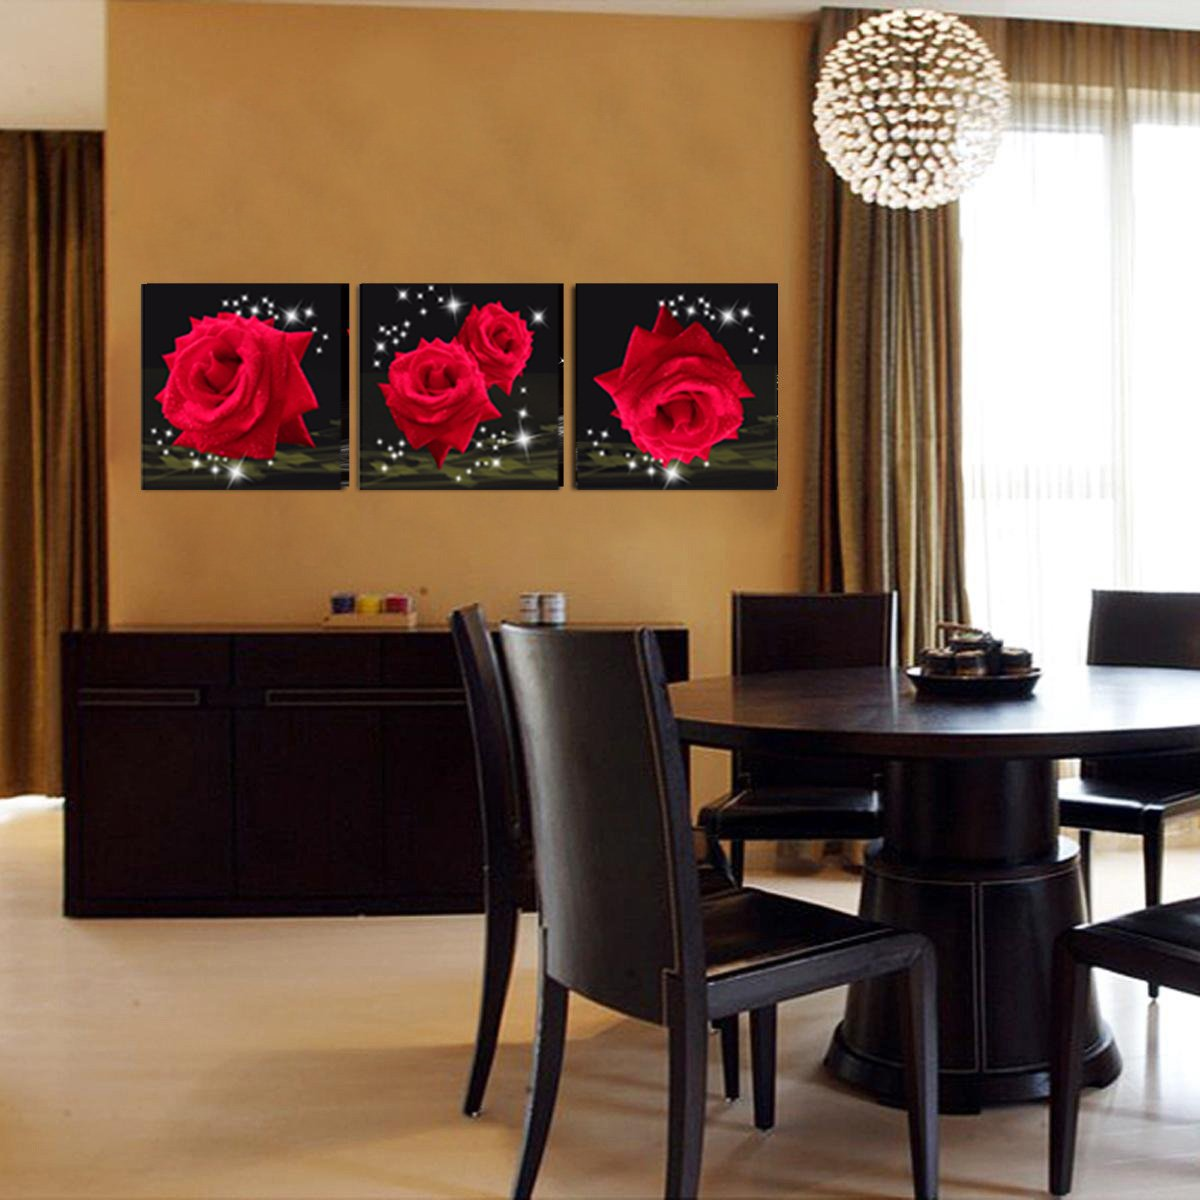 Mon Art Love Of Red Roses Modern Decorative Wall Canvas Set Of 3(UnStretched and UnFramed) by Mon Art (Image #5)